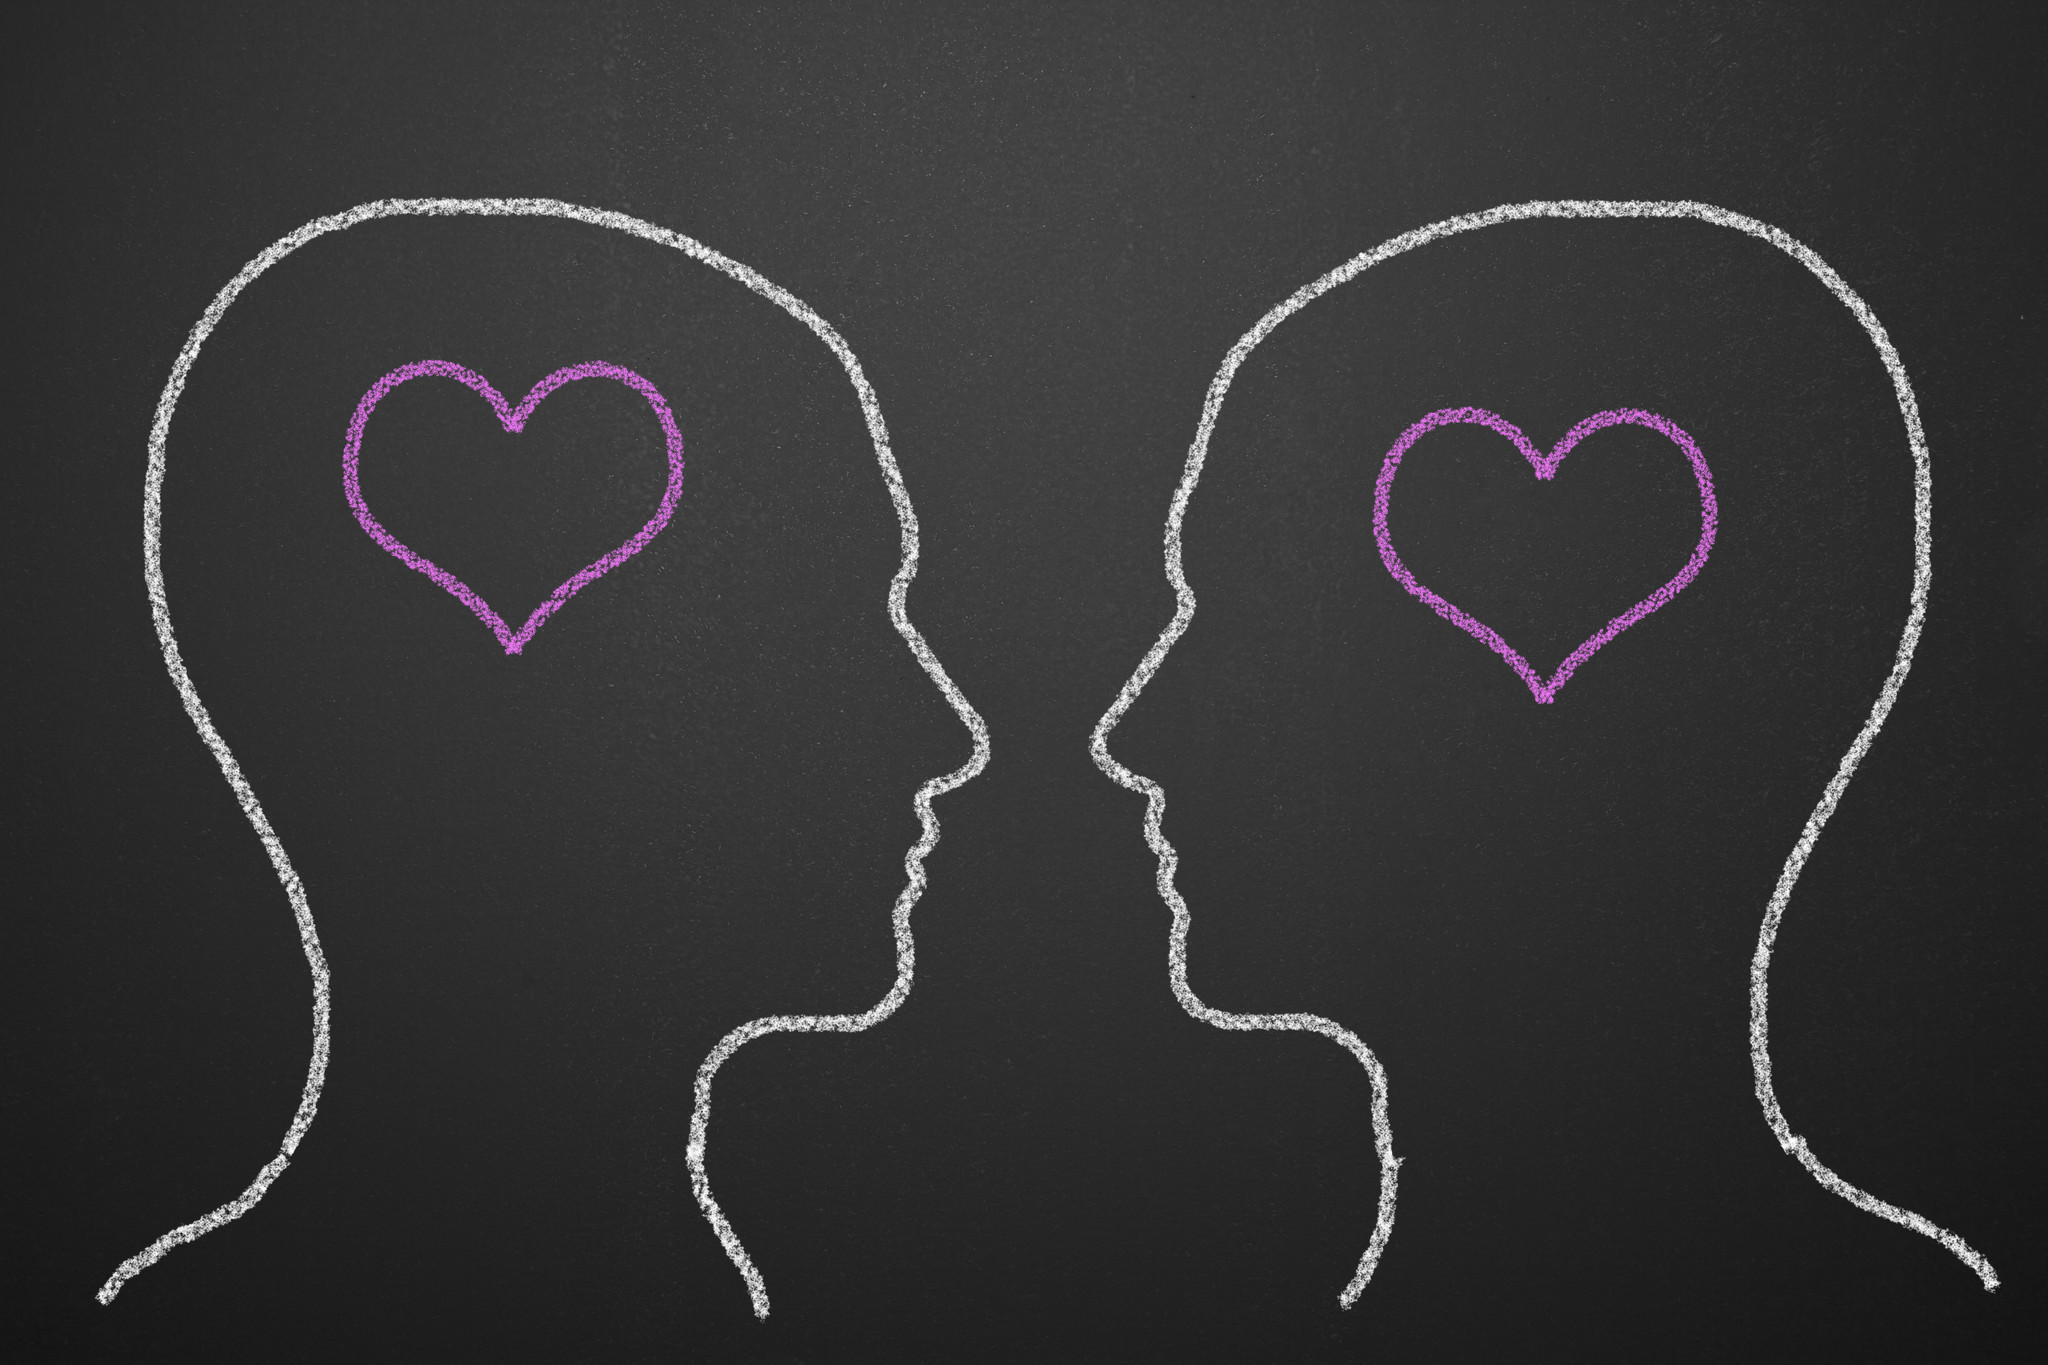 What dating sites offer asexual and demi sexual options